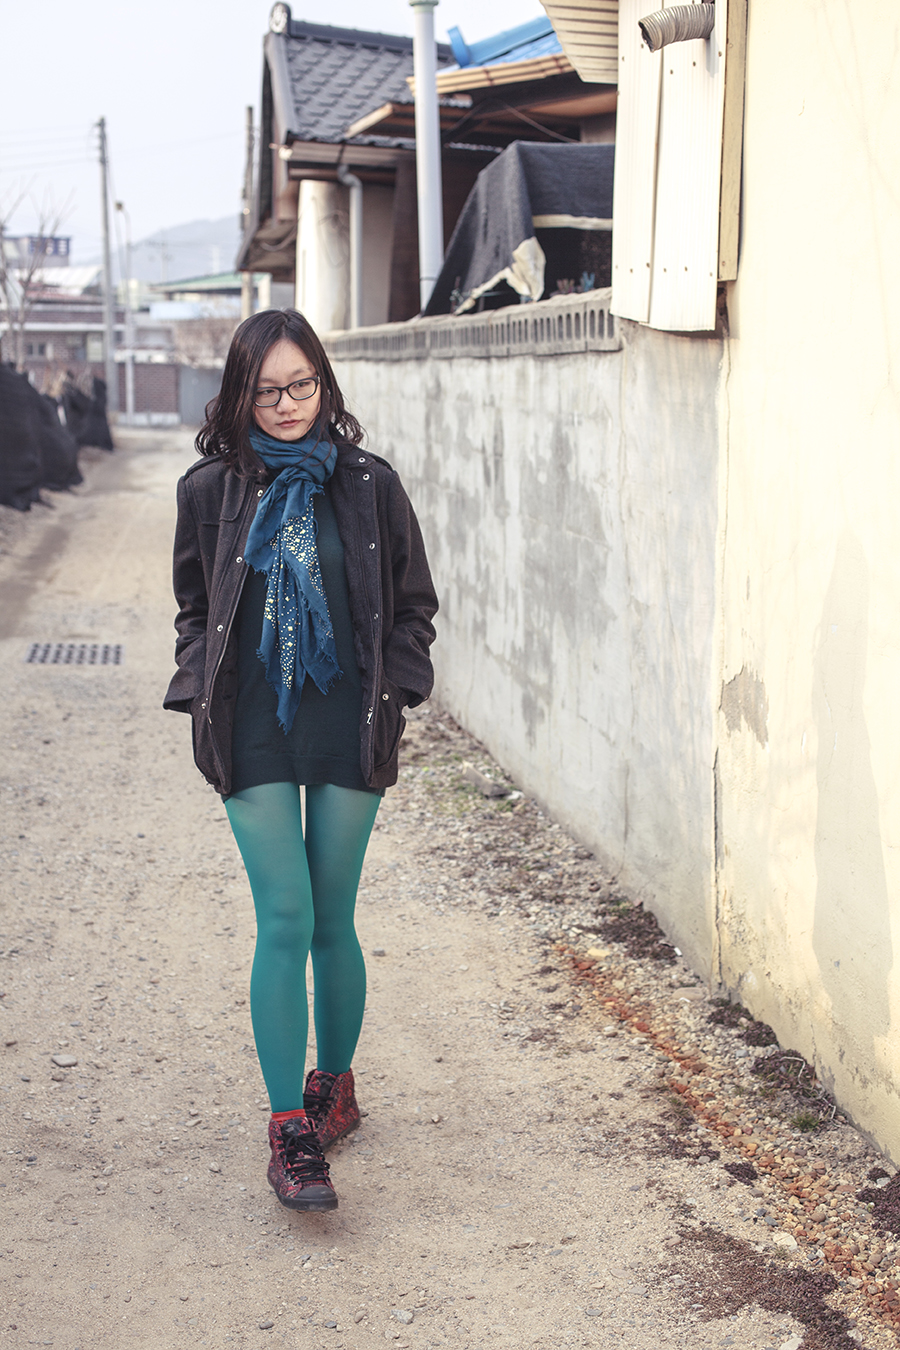 Outfit in green: H&M merino wool sweater in green, Marshalls blue shawl with gold studs, teal tights, H&M men's jacket, black rimmed Gap glasses, Twisted Sisters eye motif Caren Bracelet via Zalora, Alexander McQueen x Puma high top sneakers.